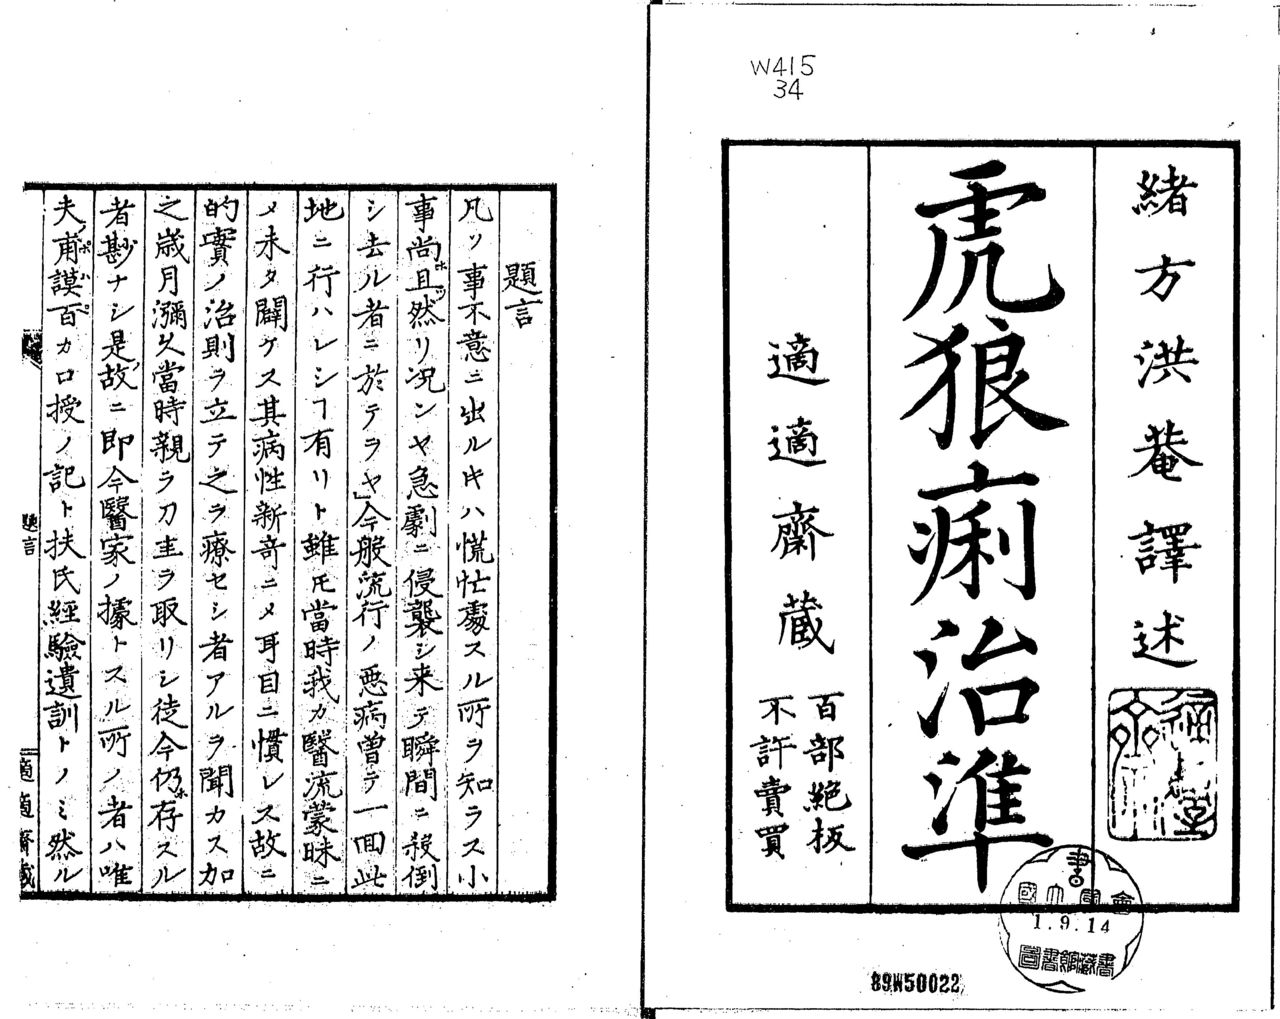 Ogata Kōan created his treatment handbook Korori chijun (Guide to the Treatment of Cholera) based on abridgements of three foreign medical books. (Courtesy National Diet Library)